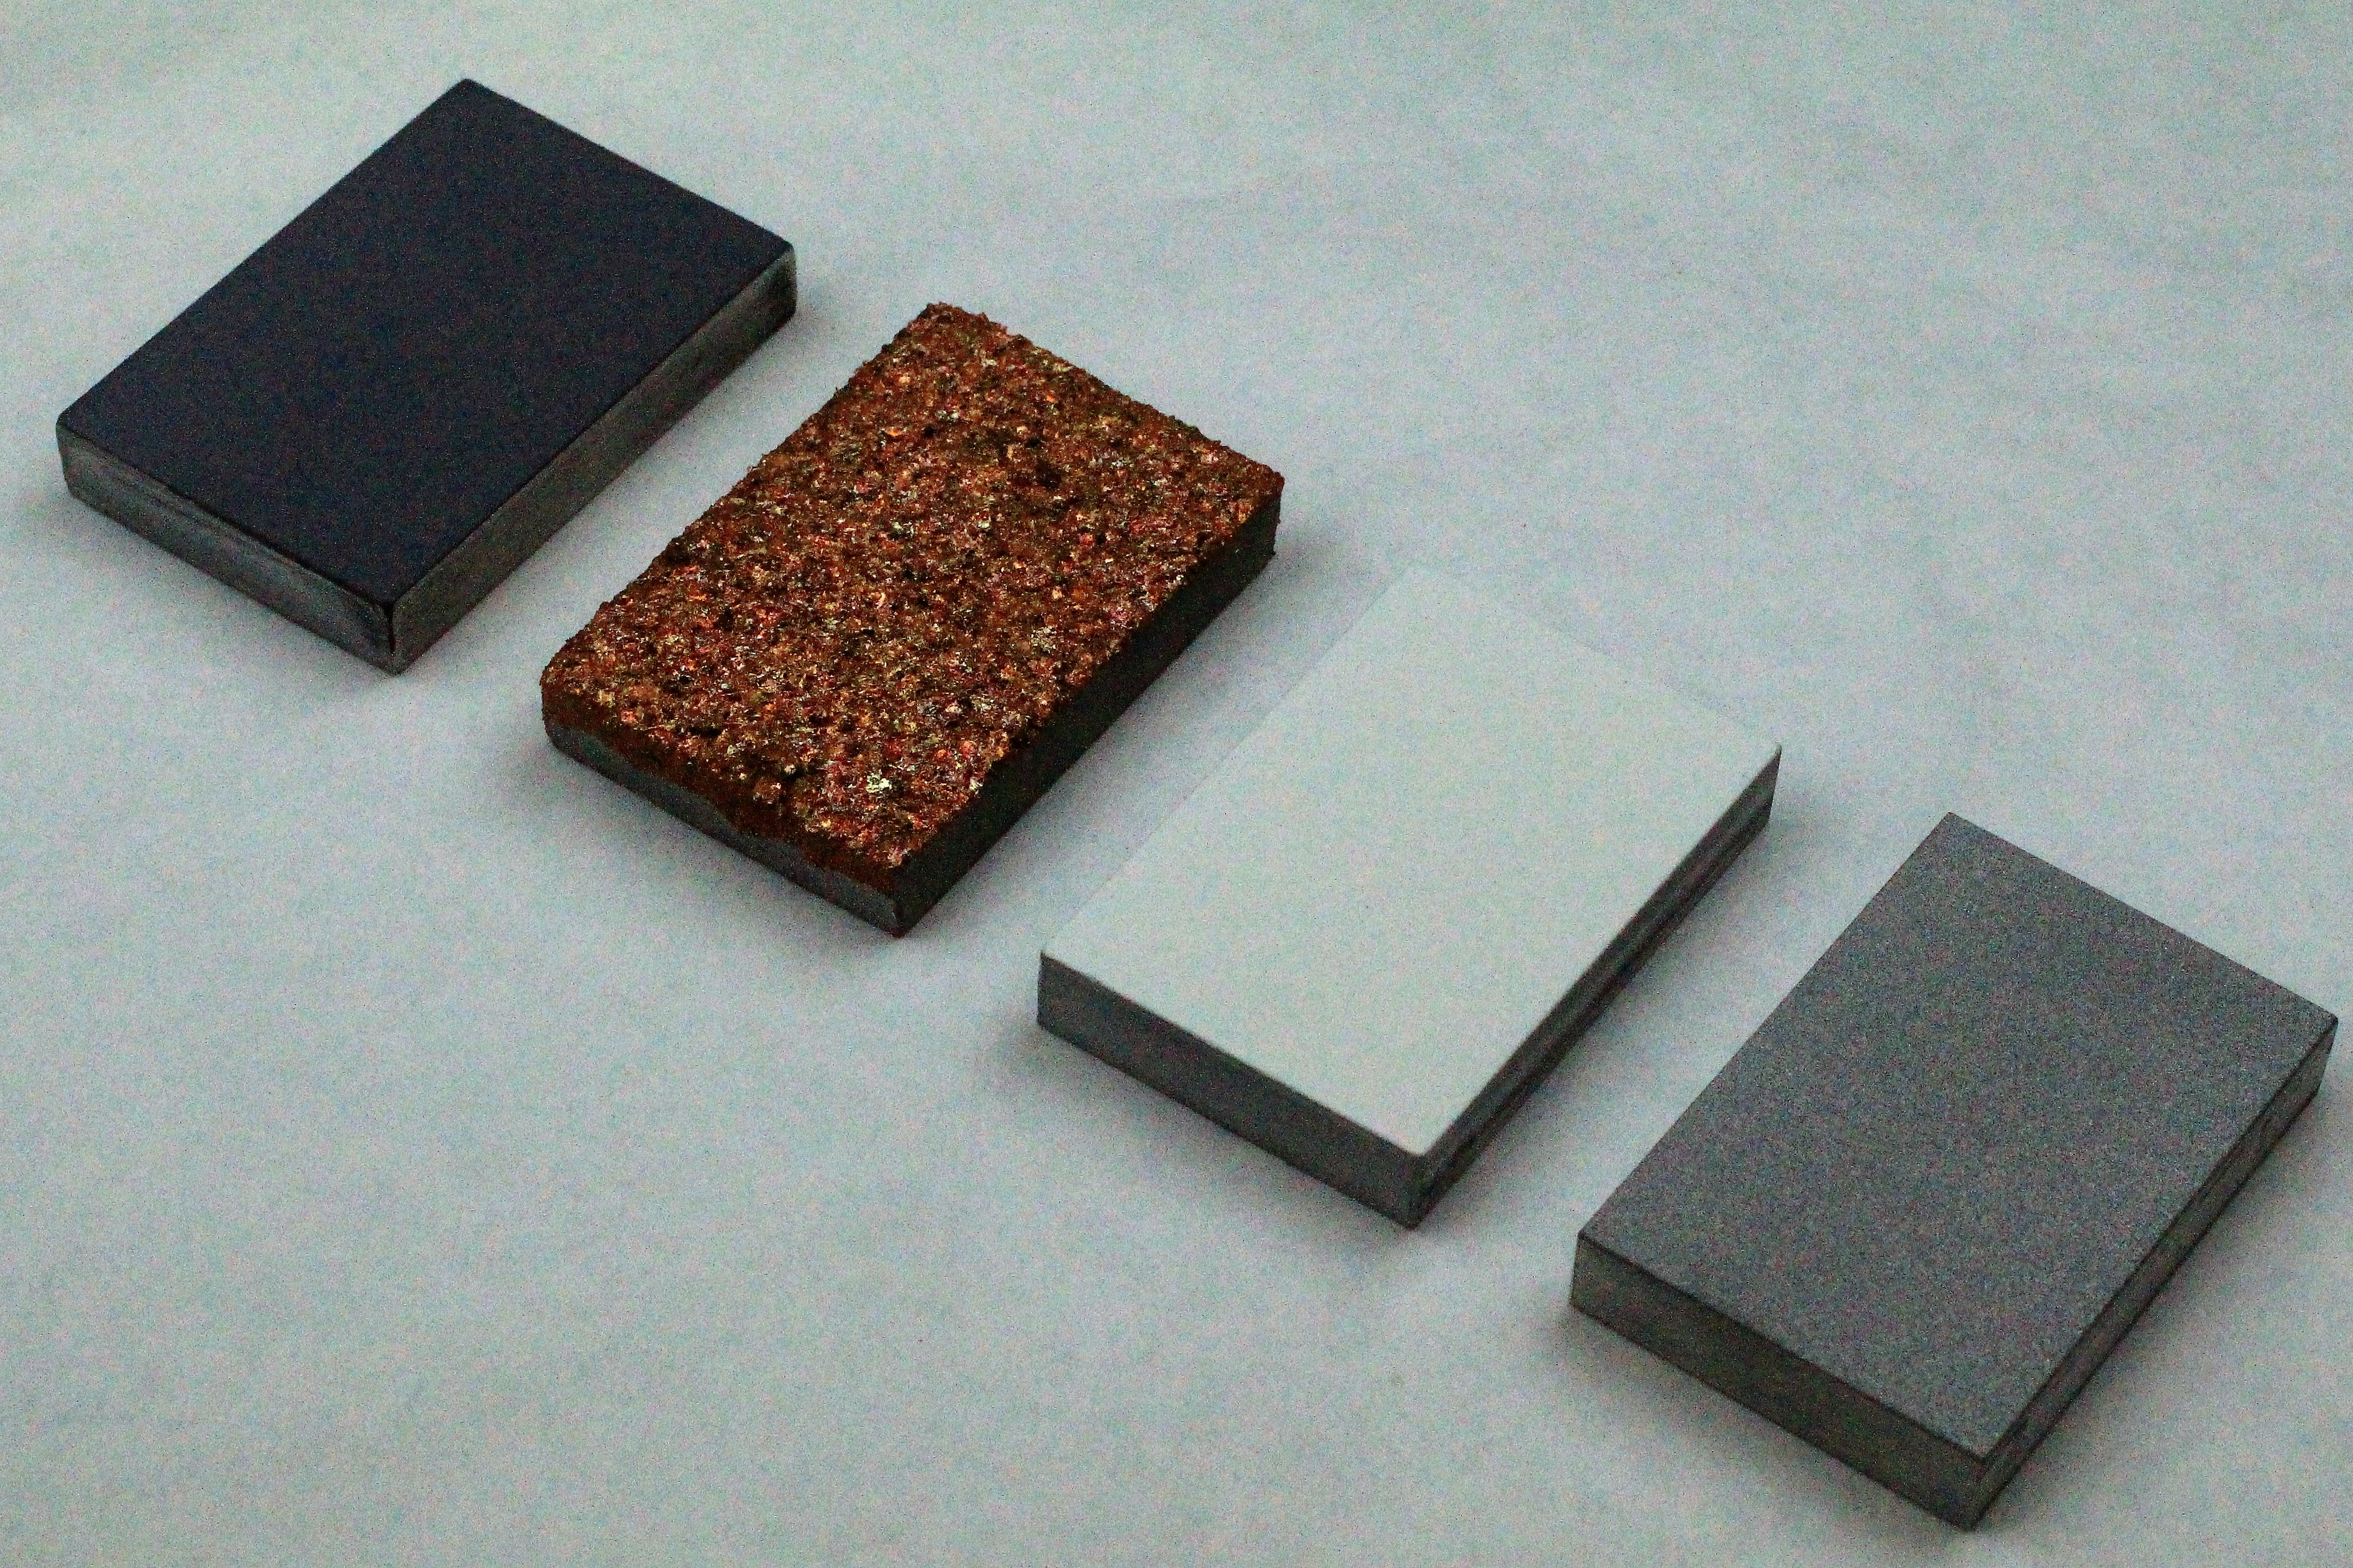 Thermal Coating Material Options